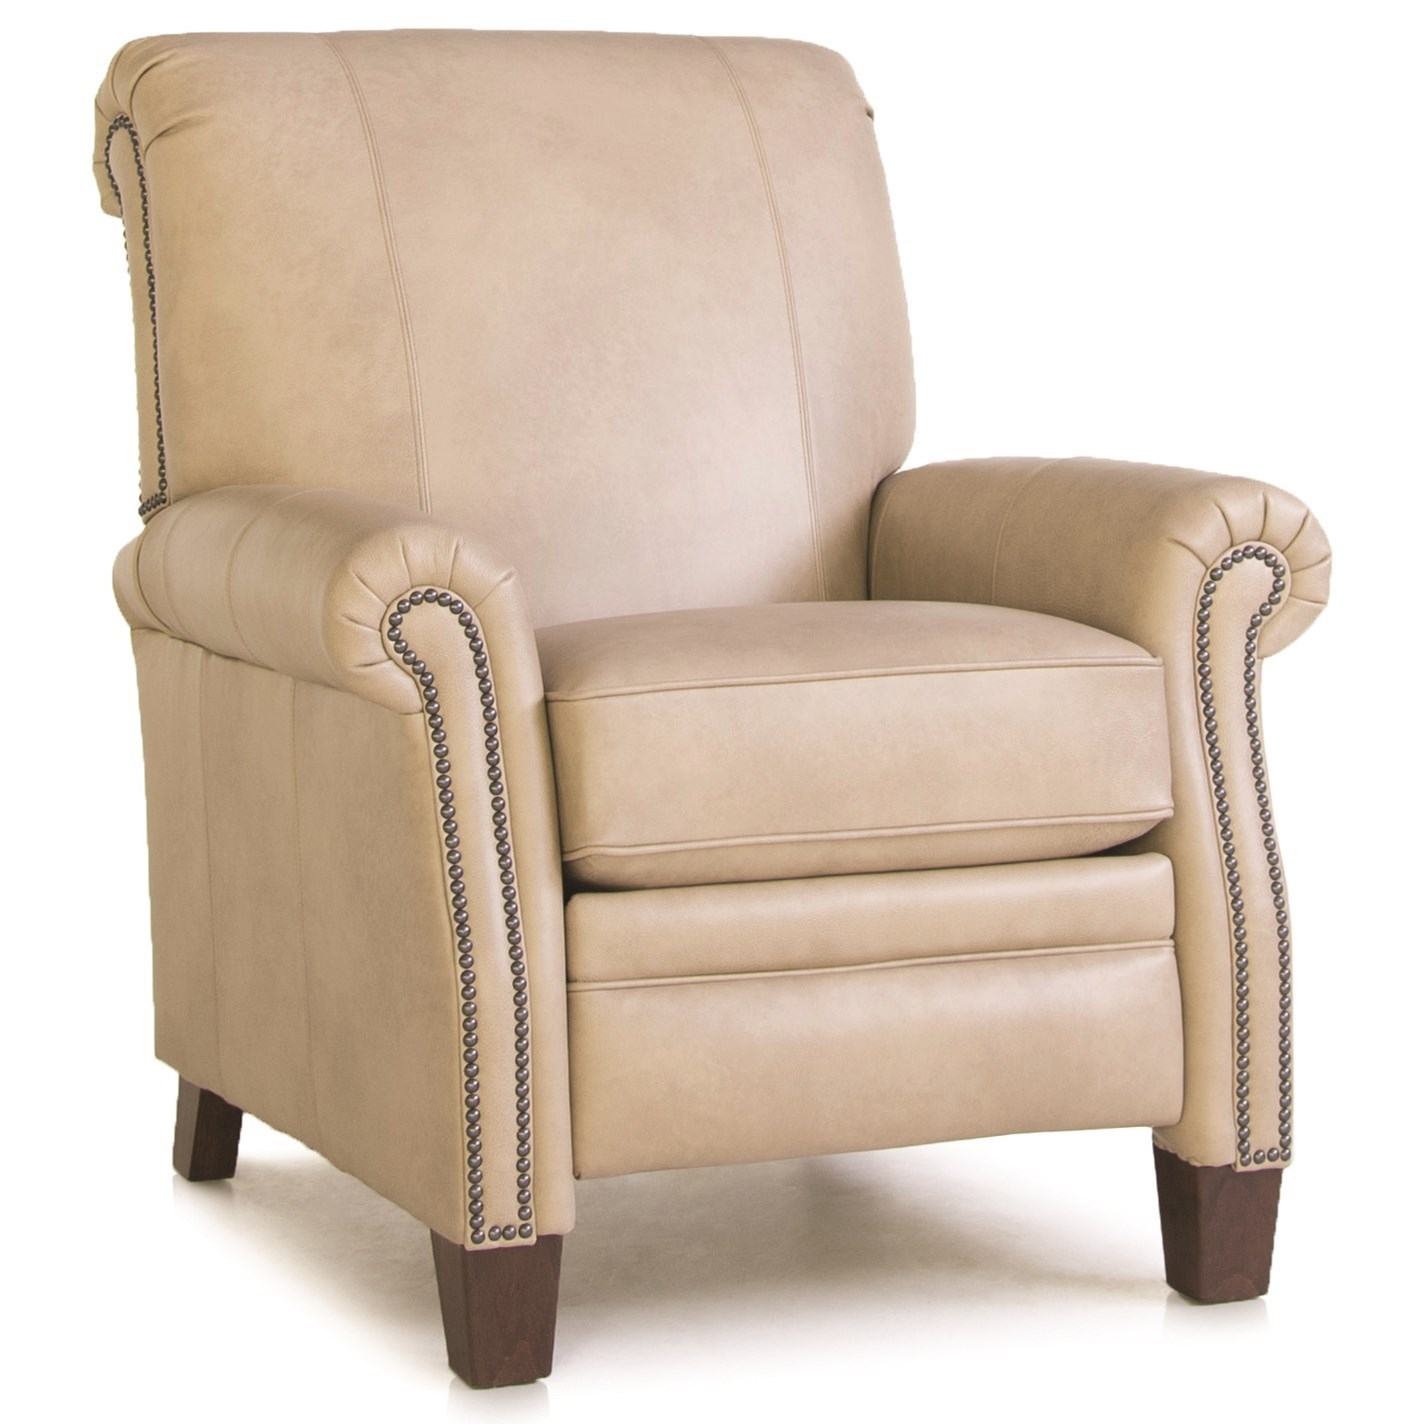 704-SB High Leg Motorized Recliner by Smith Brothers at Saugerties Furniture Mart